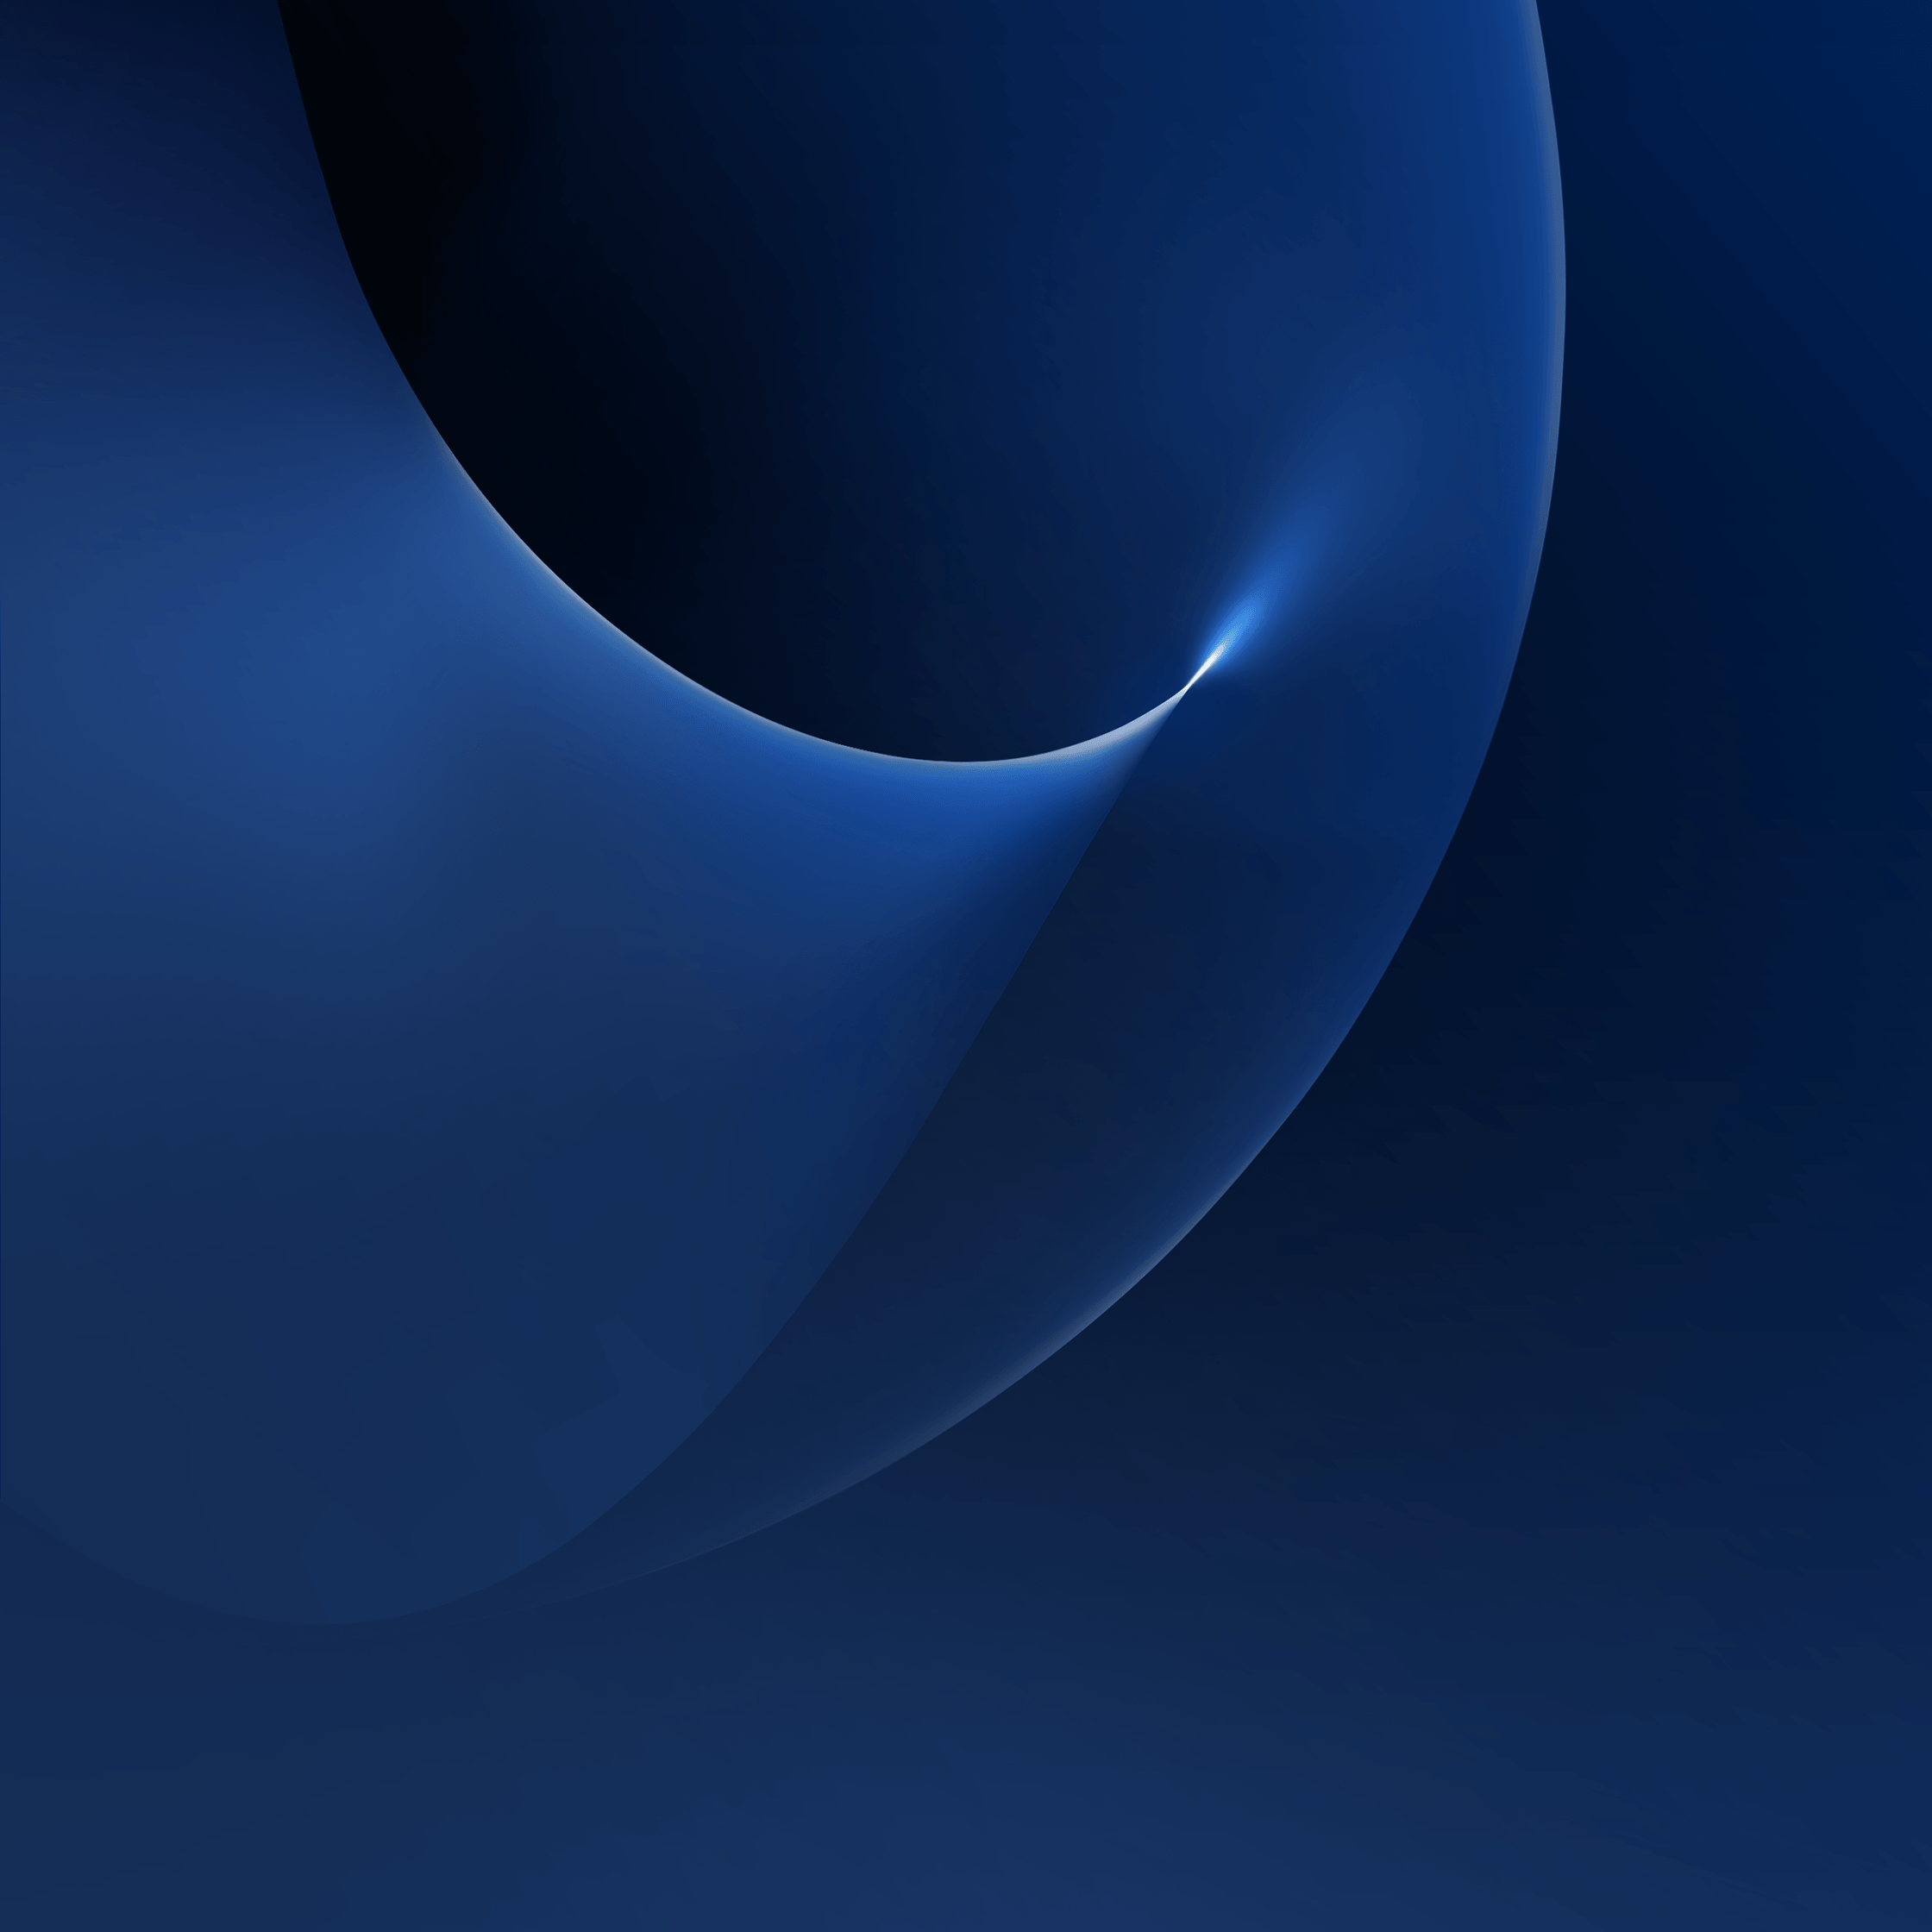 Samsung Galaxy S7 Edge Wallpapers Wallpaper Cave